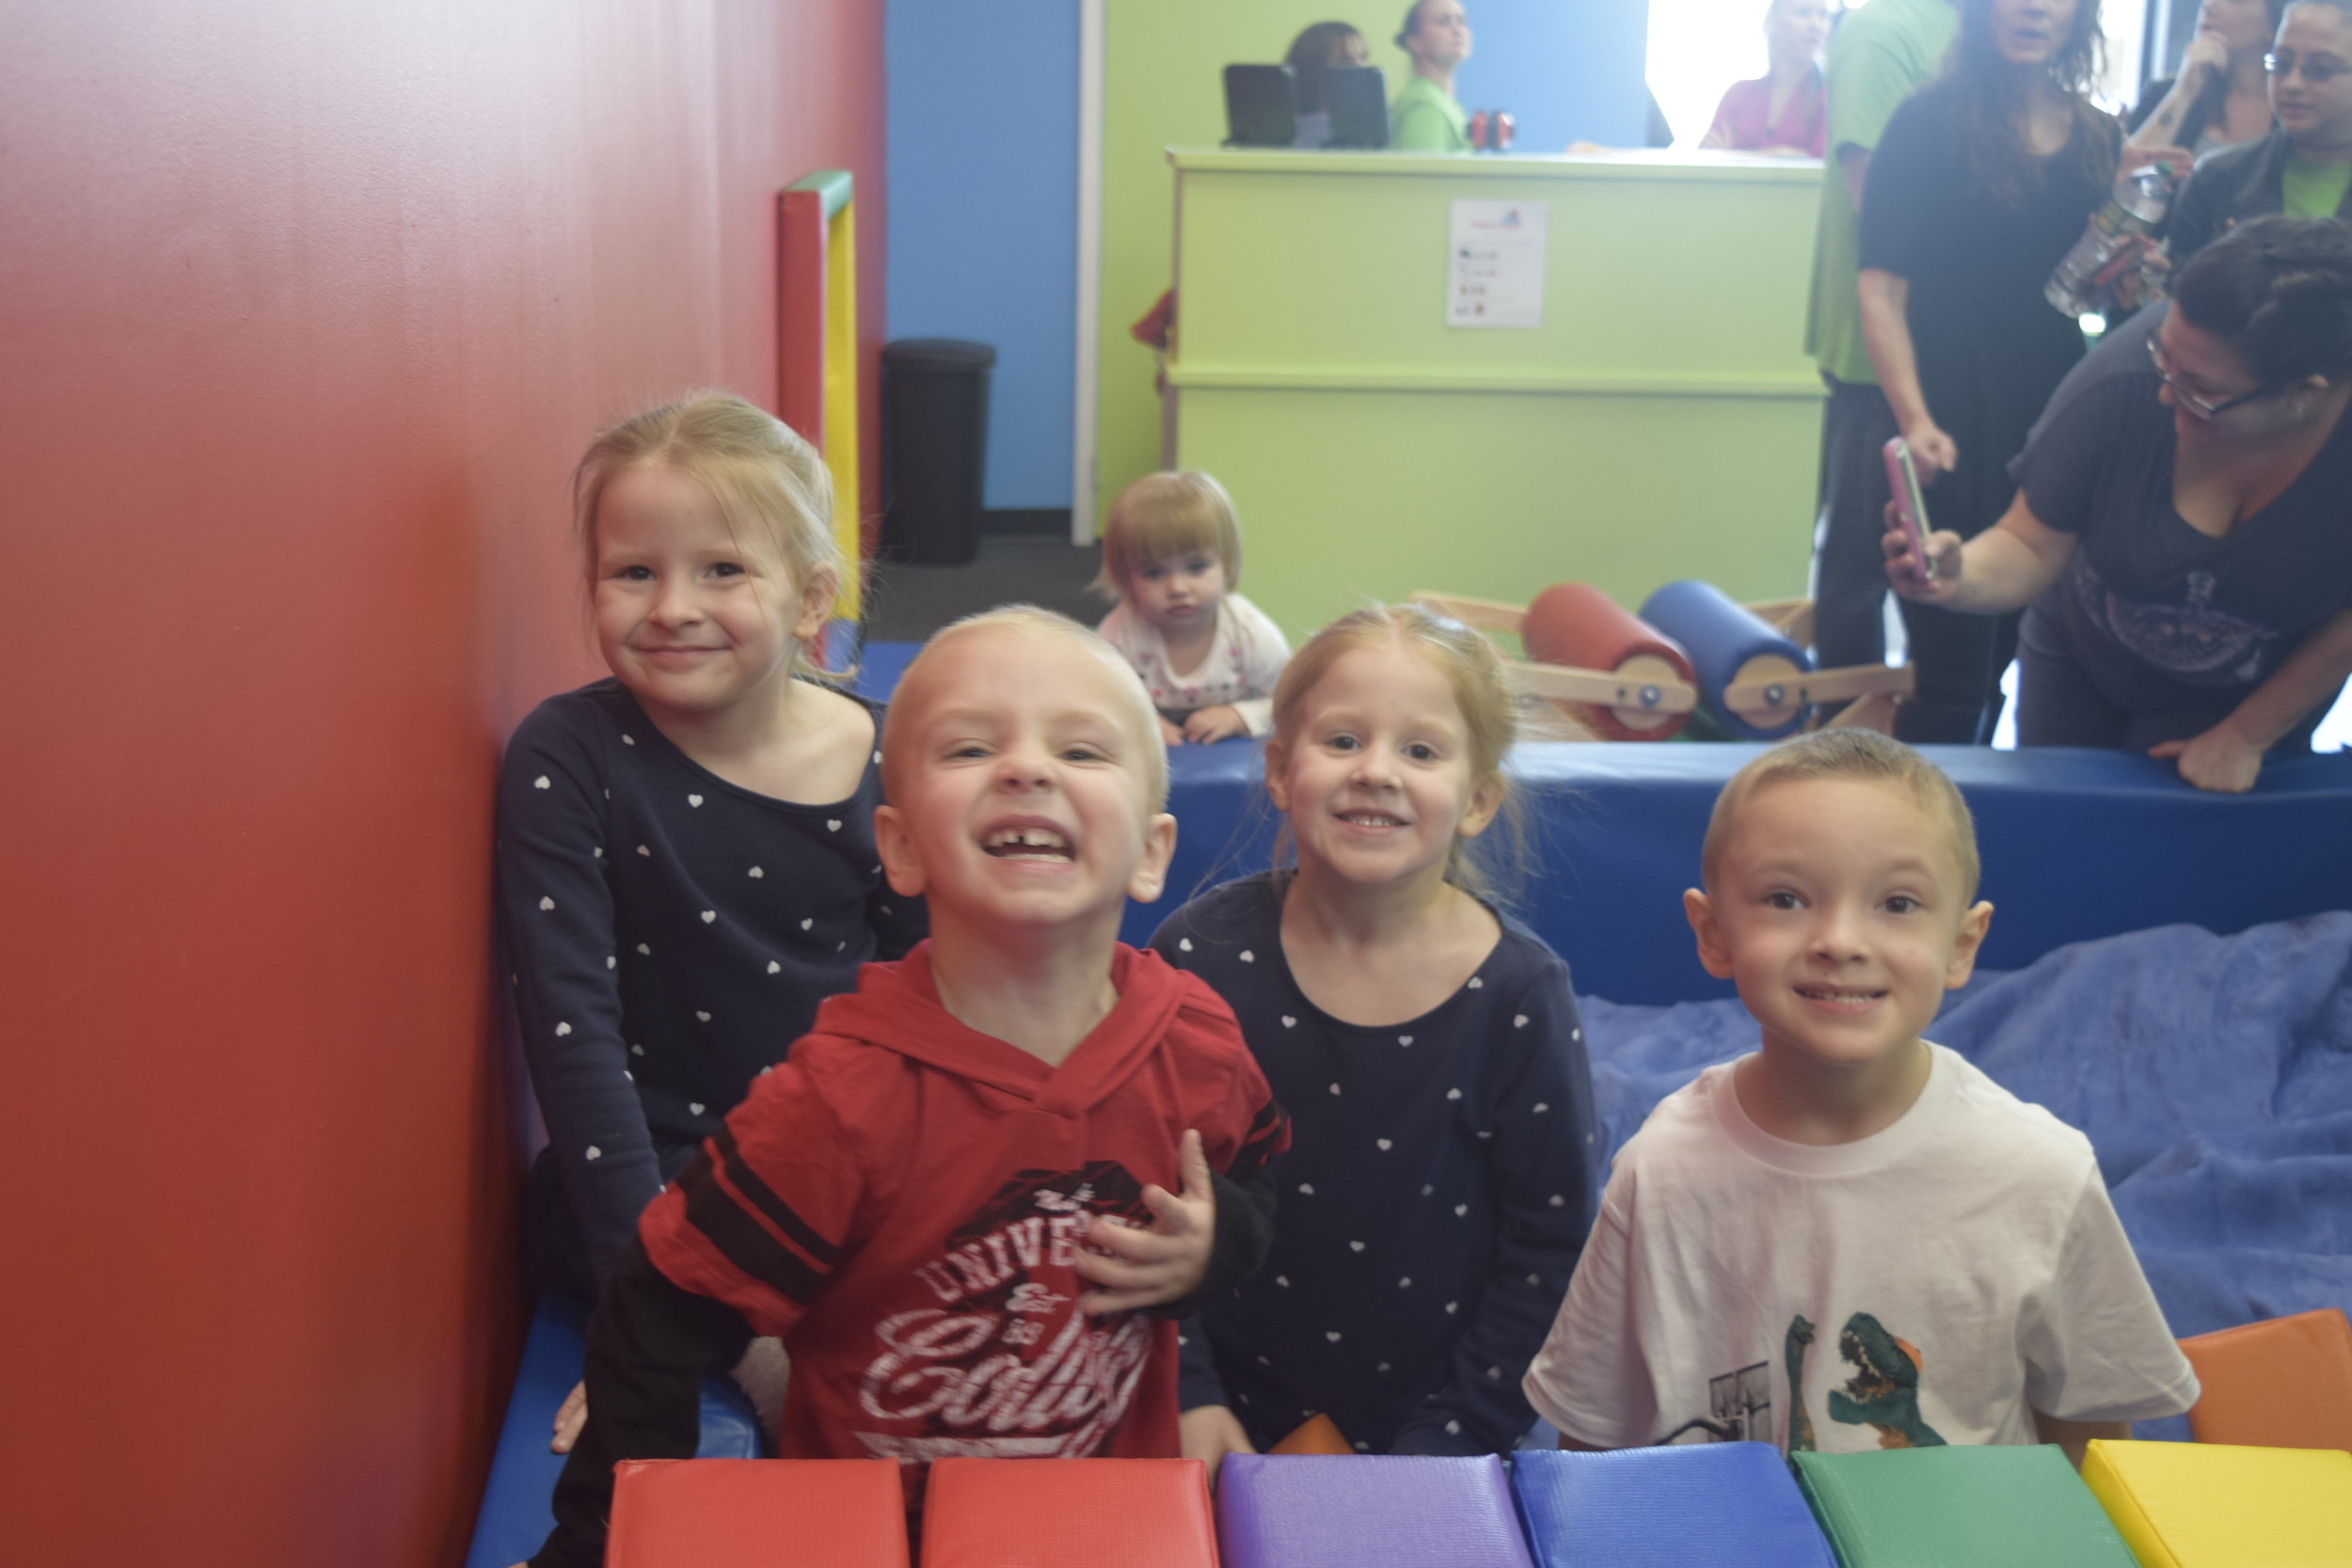 Children enjoyed jumping into the foam pit at the grand opening.